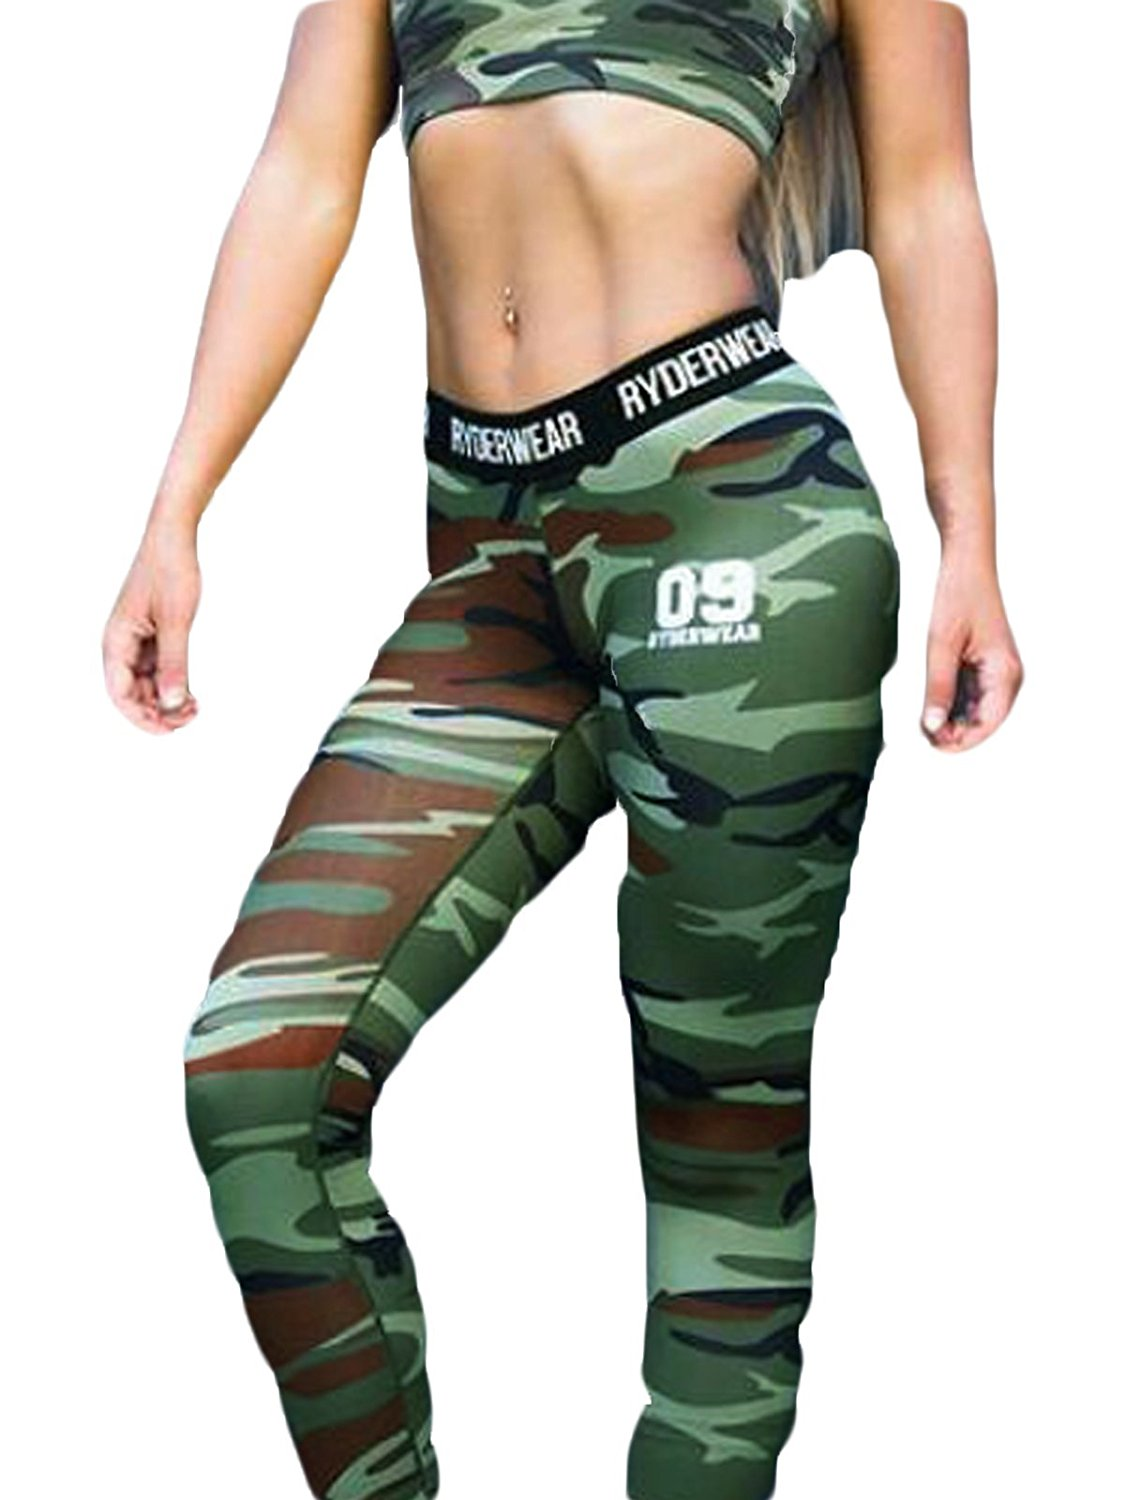 f7956b43b4 Get Quotations · Women's Camo Compression Pants Leggings for Running, Yoga,  Gym Tights Base Layer Leggings,